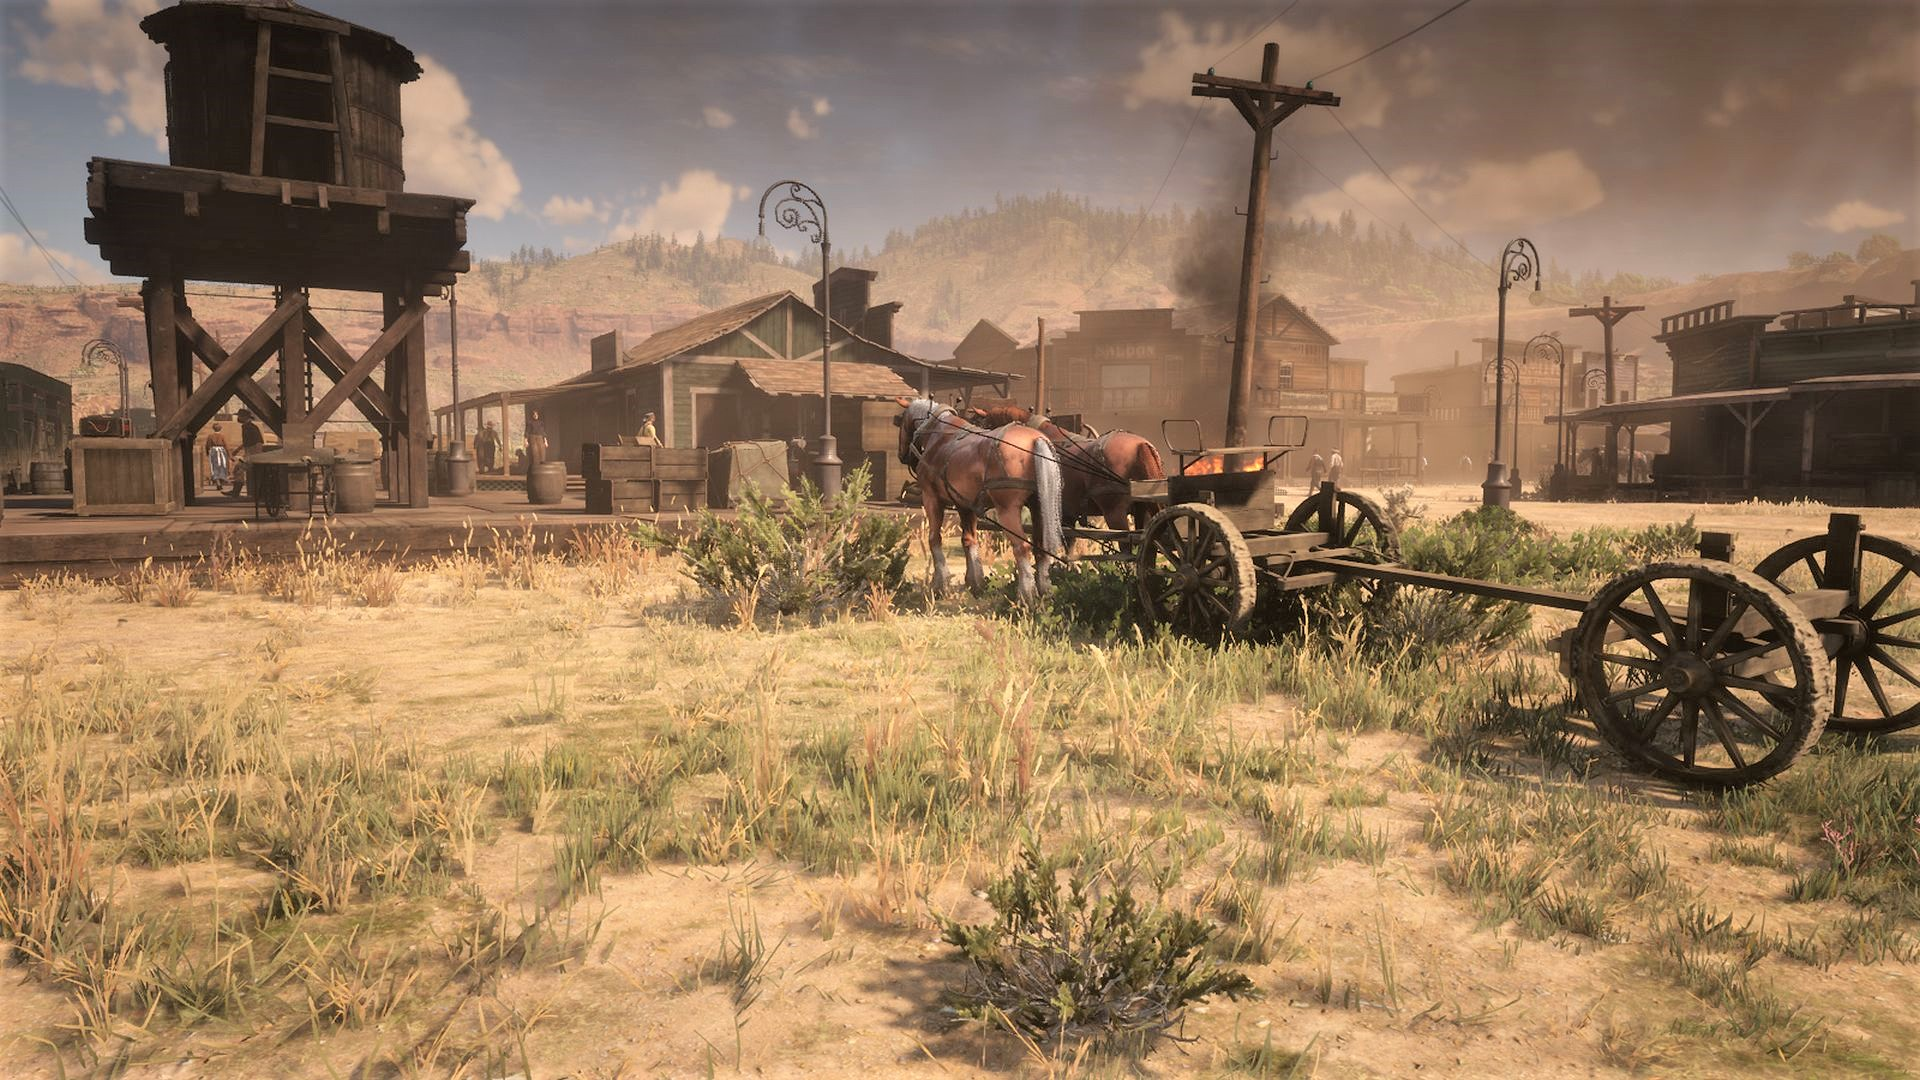 A Red Dead Redemption 2 modder has restored Armadillo to its future glory